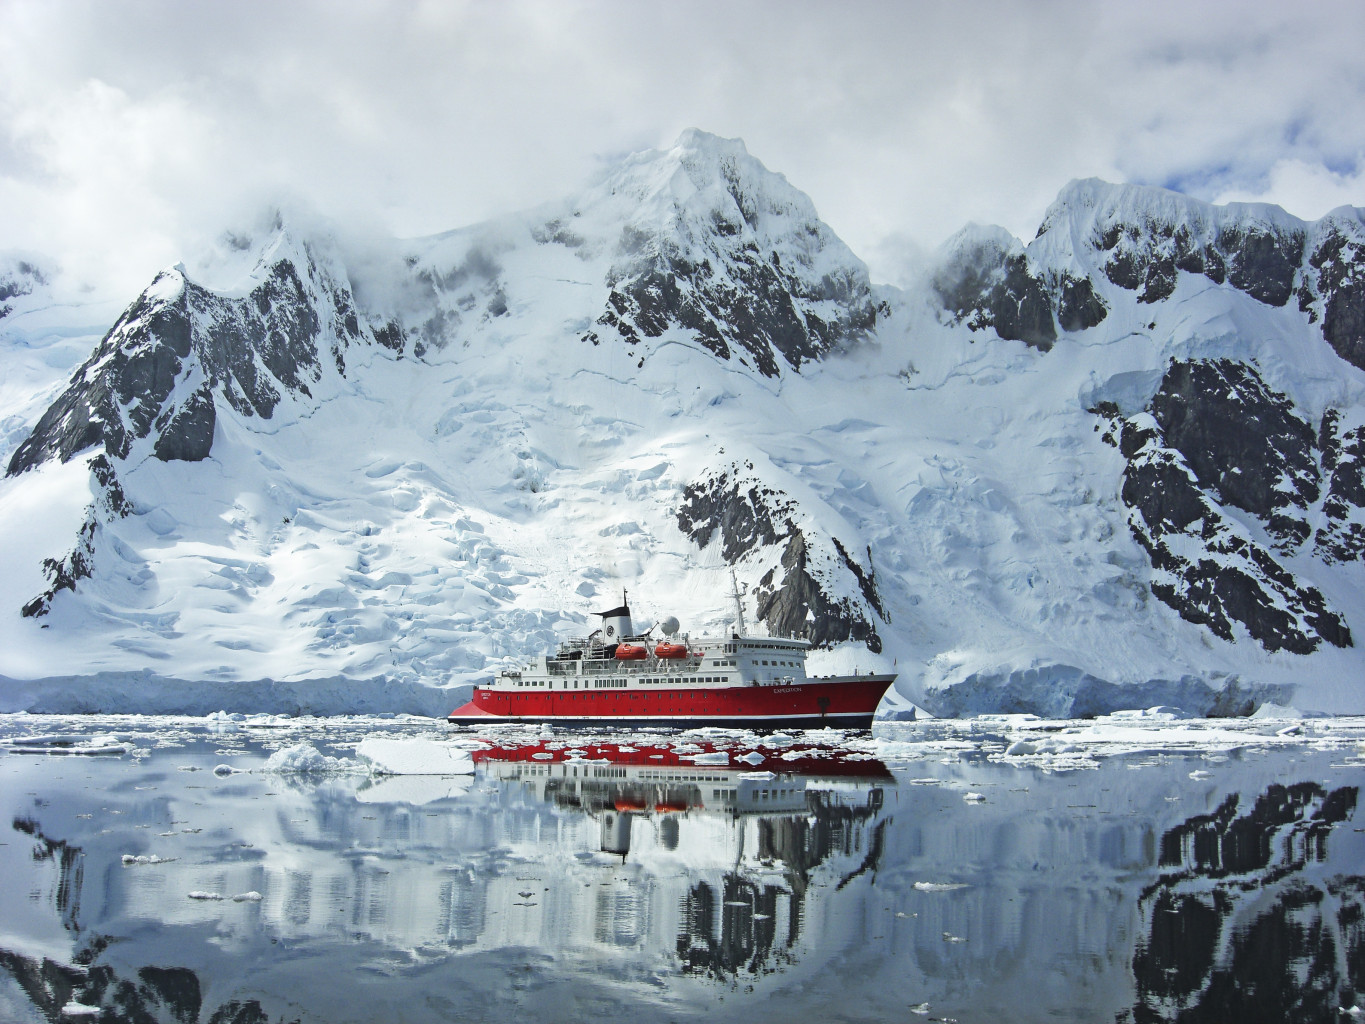 G Expedition in Antarctica. * Photo: © G Adventures, Inc.